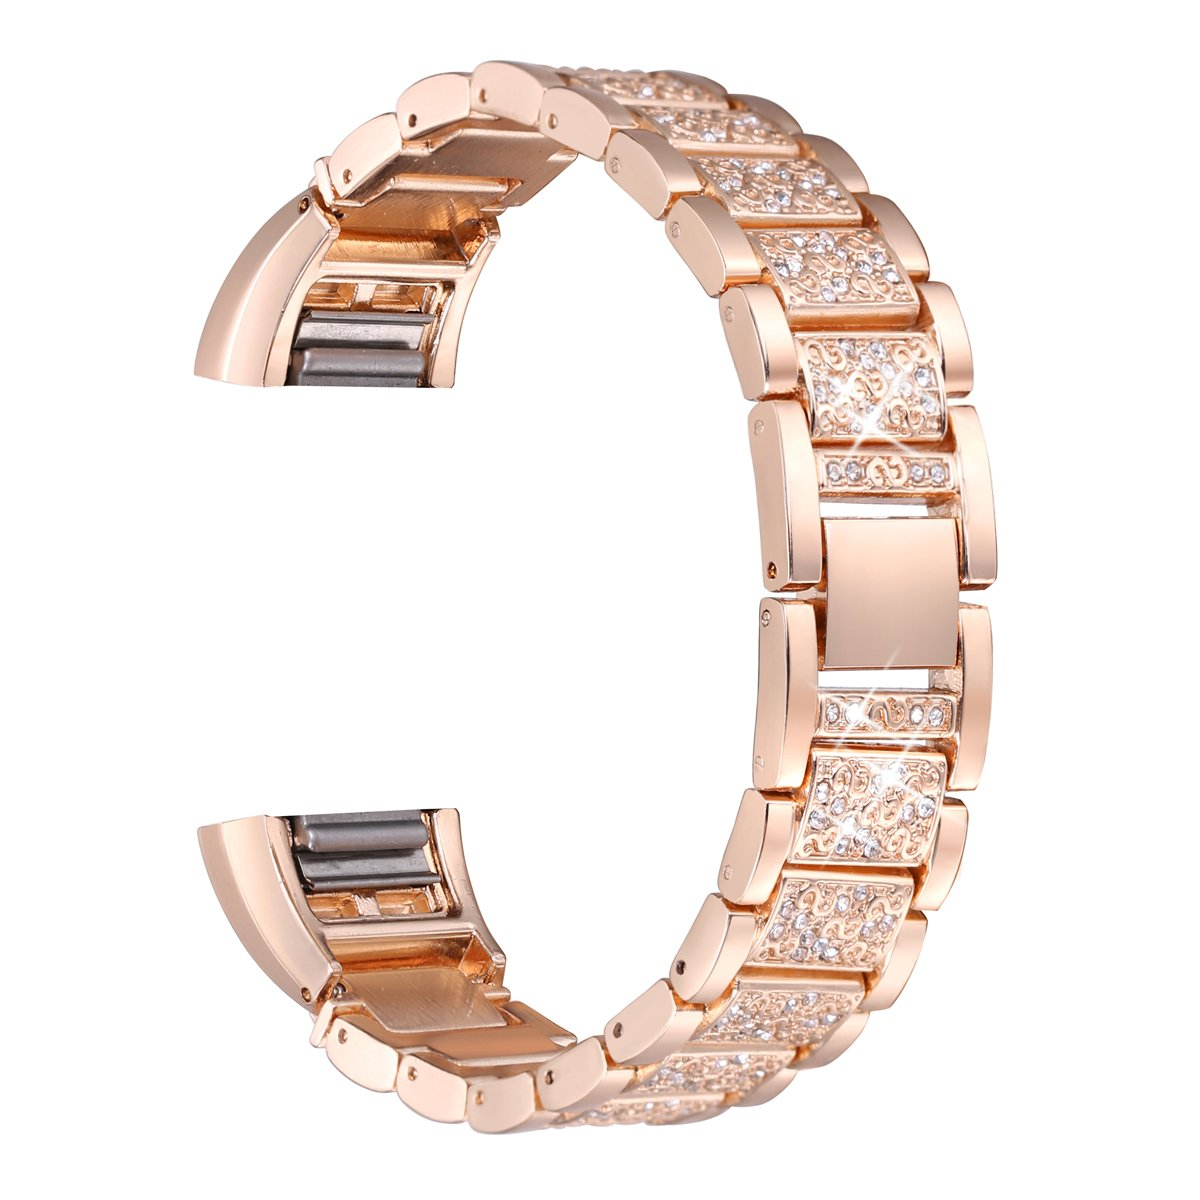 bayite For Fitbit Charge 2, Replacement Metal Bands with Rhinestone Fitbit Charge2 Bling Bands Rose Gold Bracelet